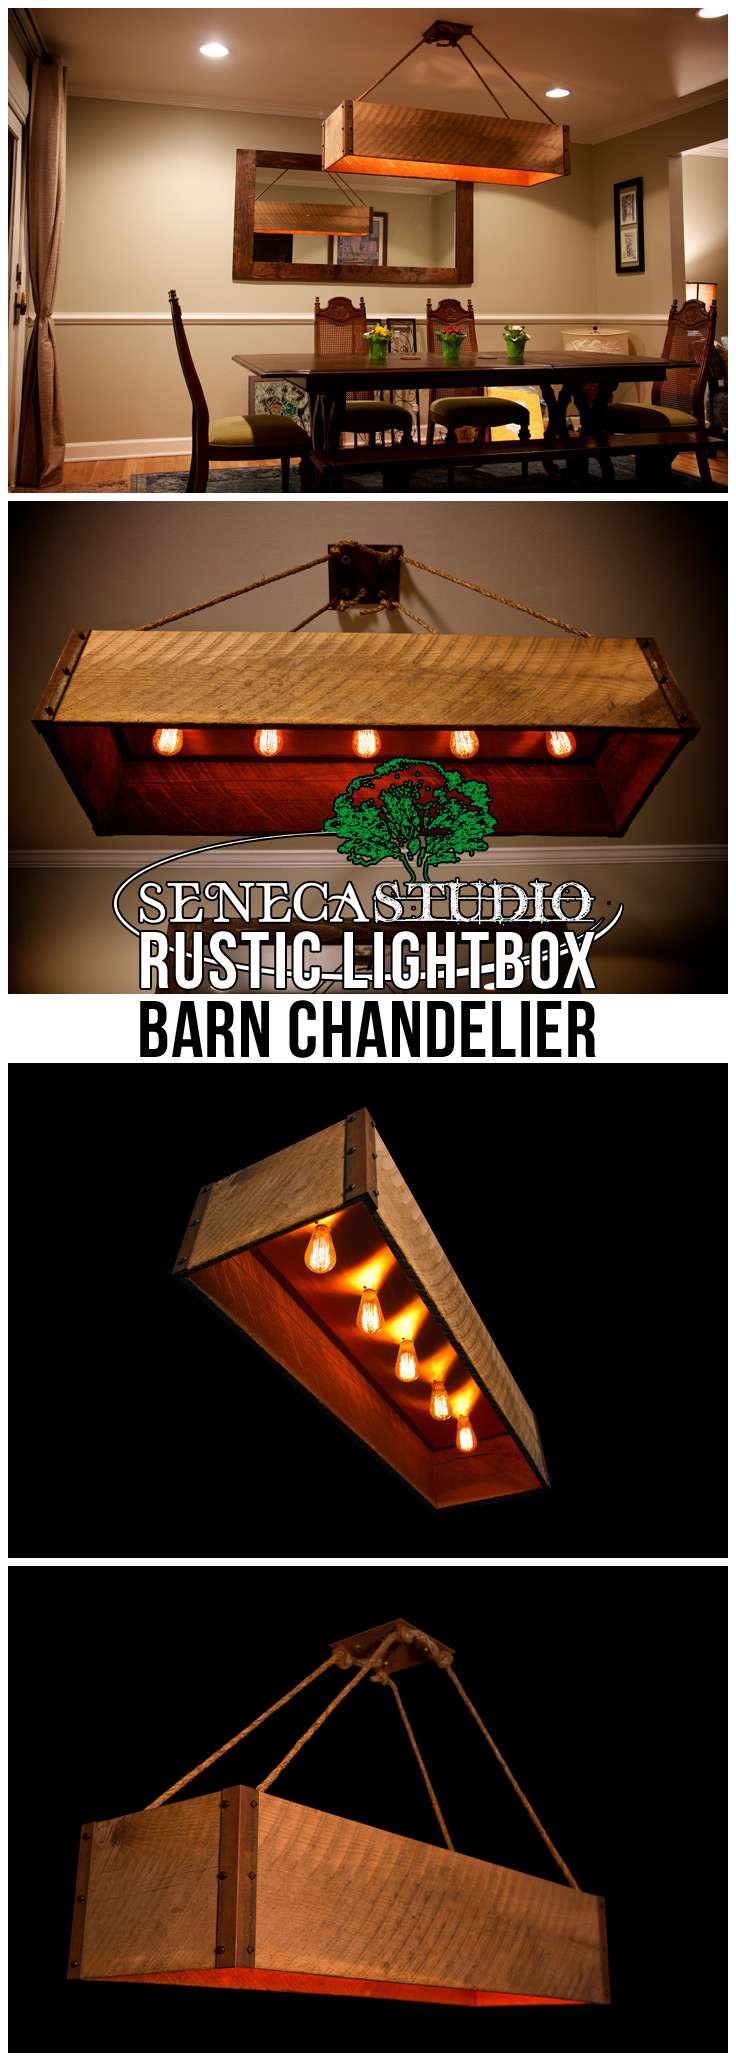 Rustic Lightbox Barn Chandelier